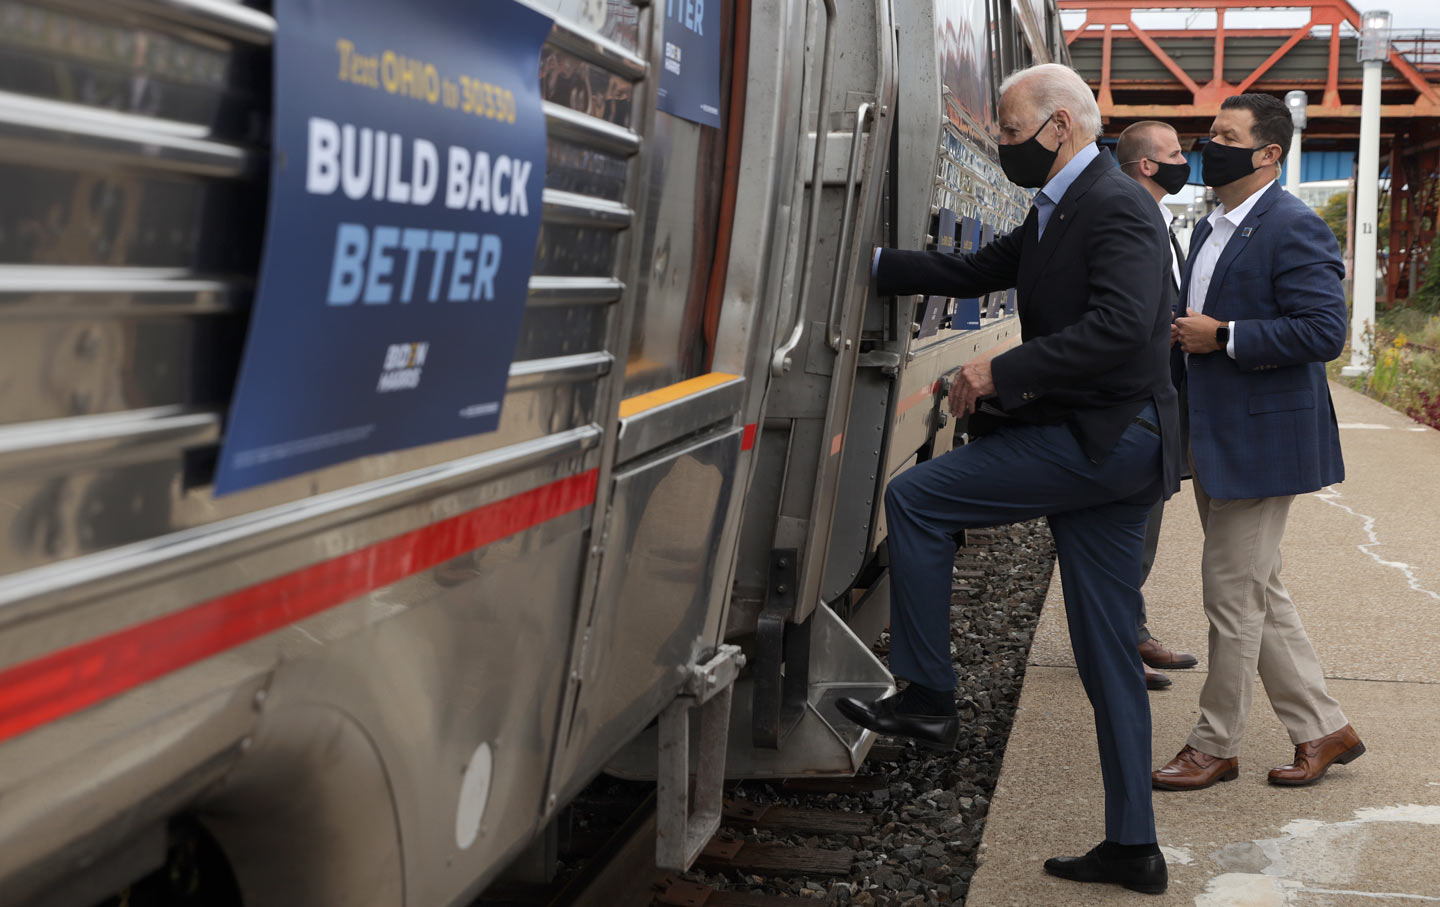 biden-amtrak-train-campaign-gty-img